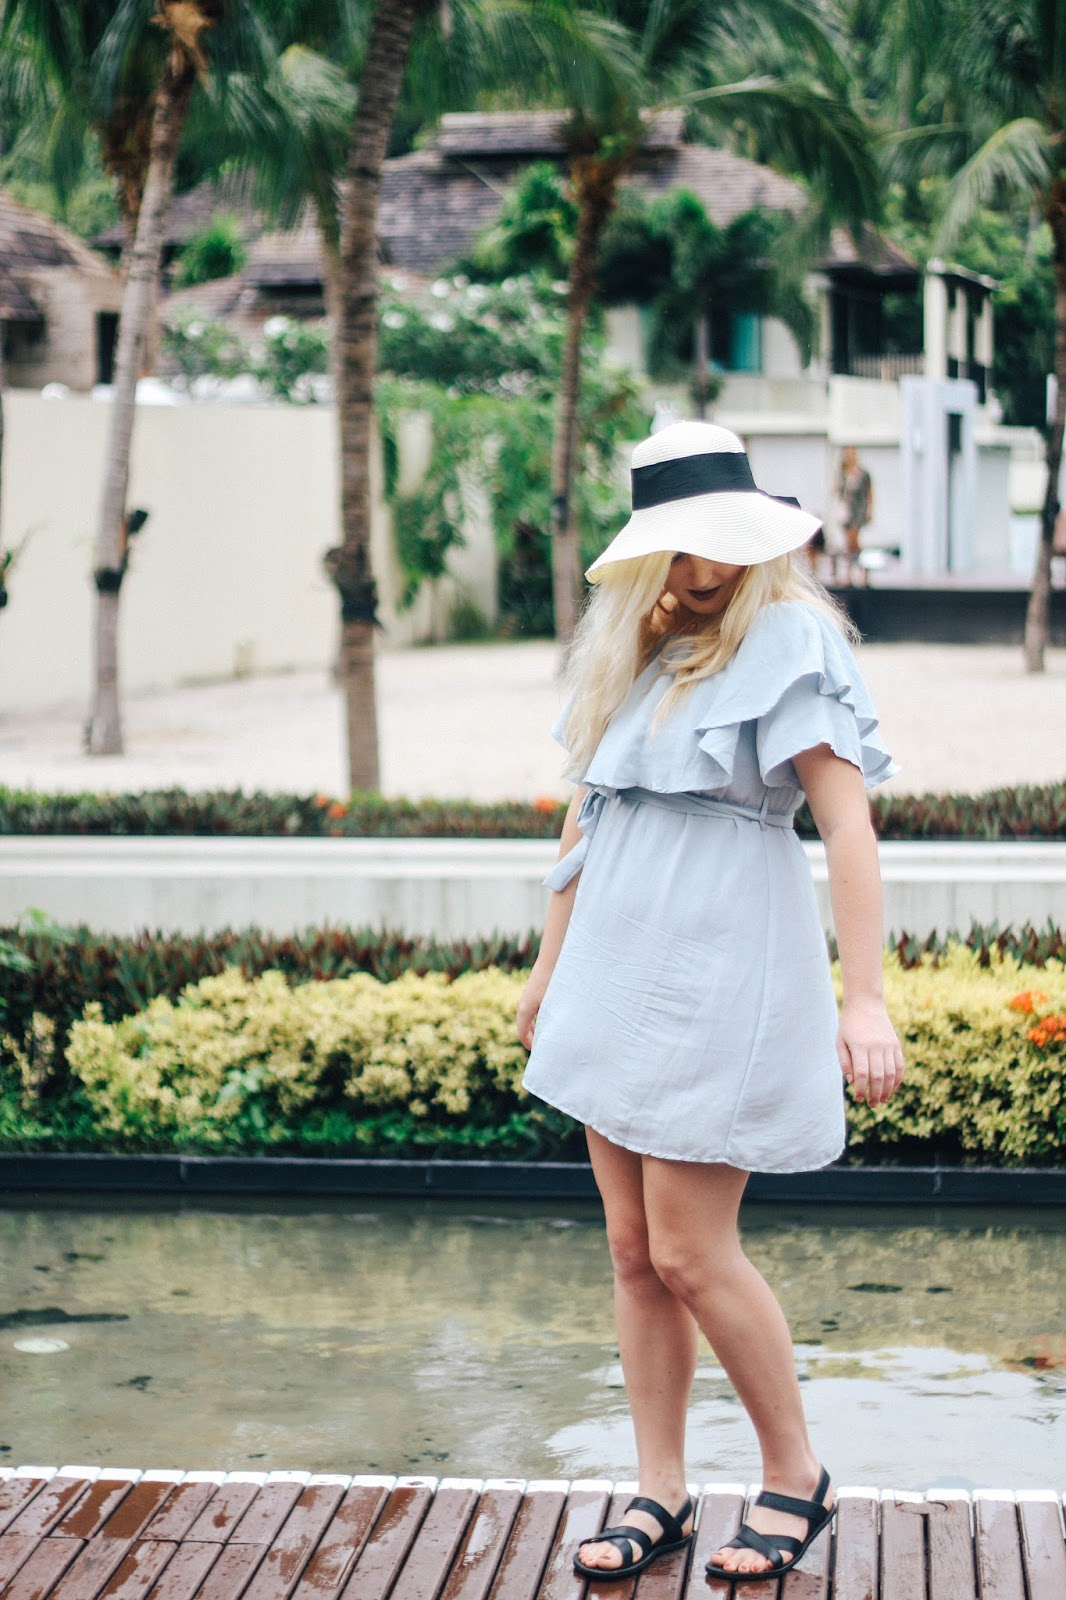 Fashion and Travel Blogger GlobalFashionGal (Brianna Degaston) wearing a TEMT light blue dress and floppy hat at Railay Beach, Thailand.